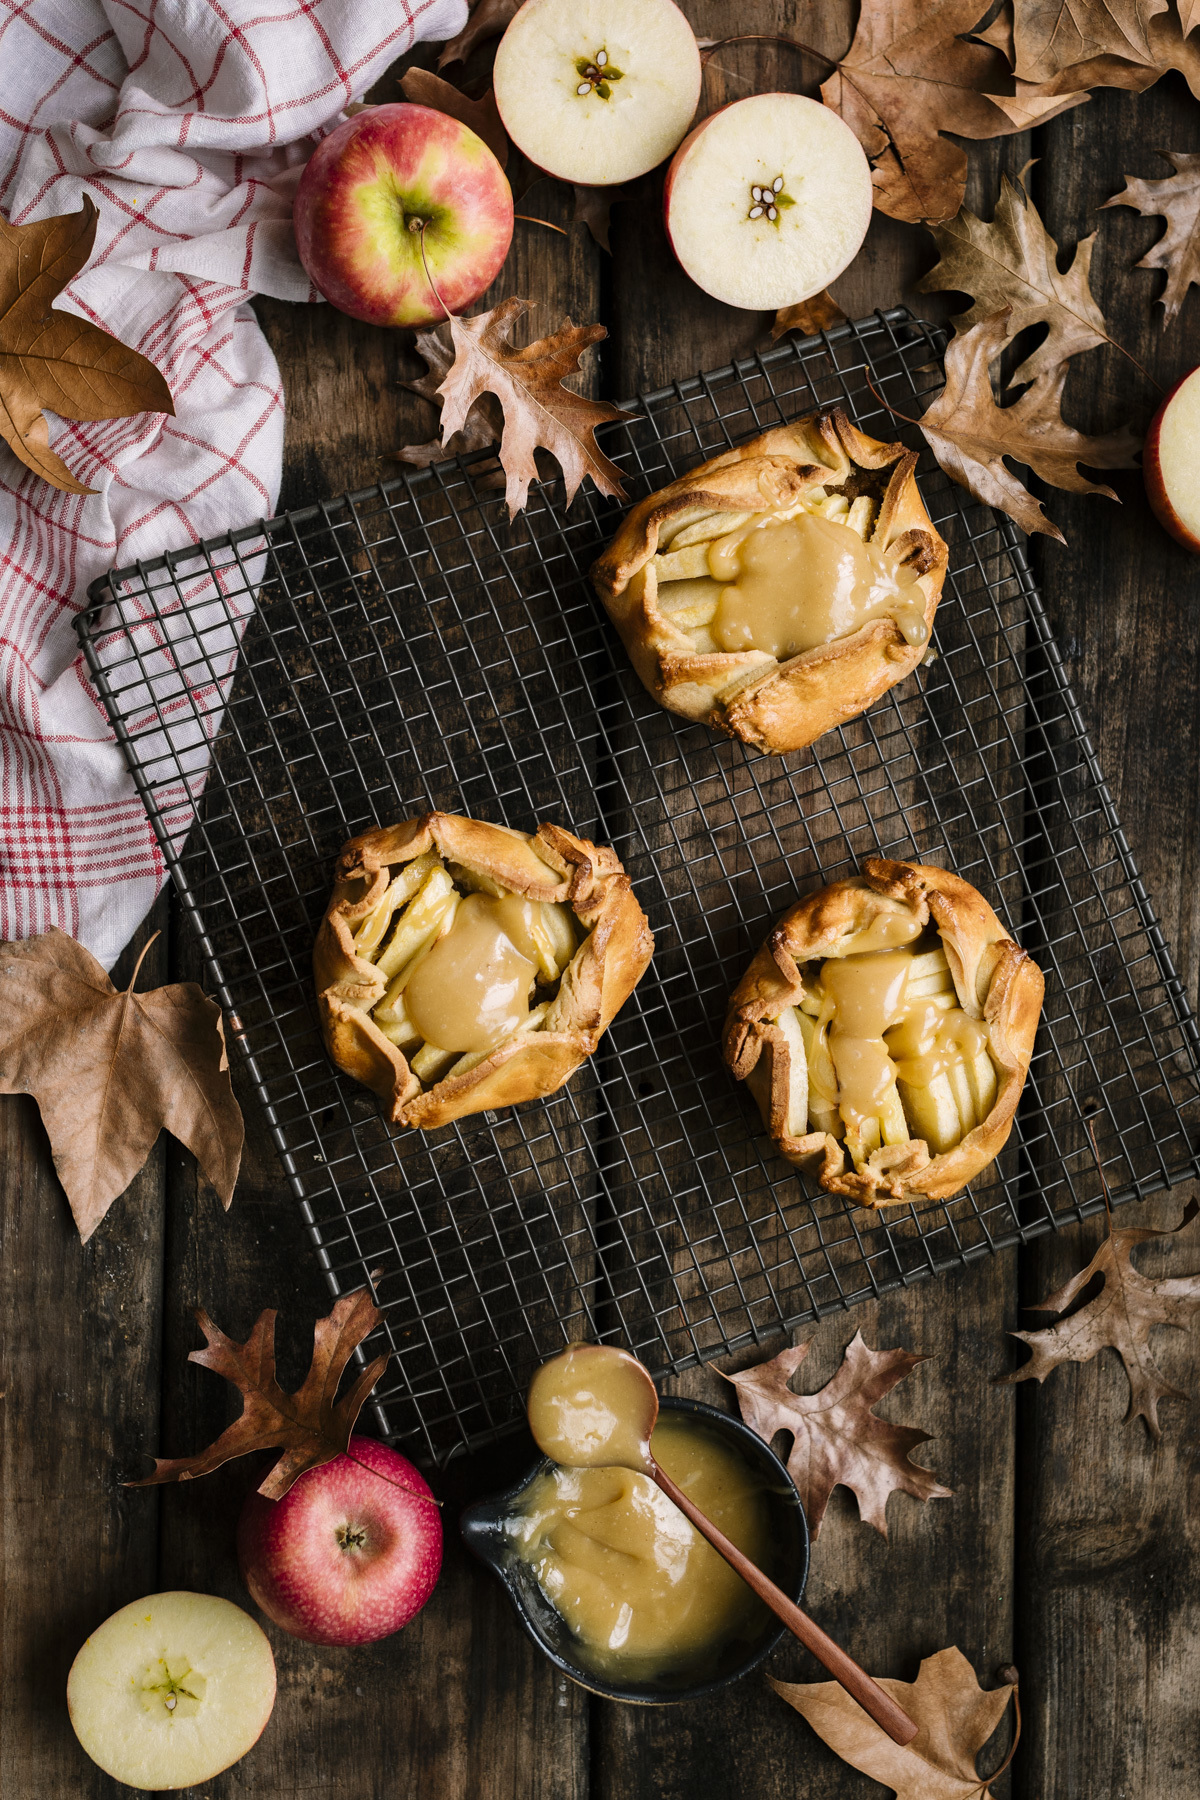 heinstirred wrote a new post, Pink Lady® Apple Galettes with Spelt Crusts and Tahini Butterscotch Sauce, on the site heinstirred